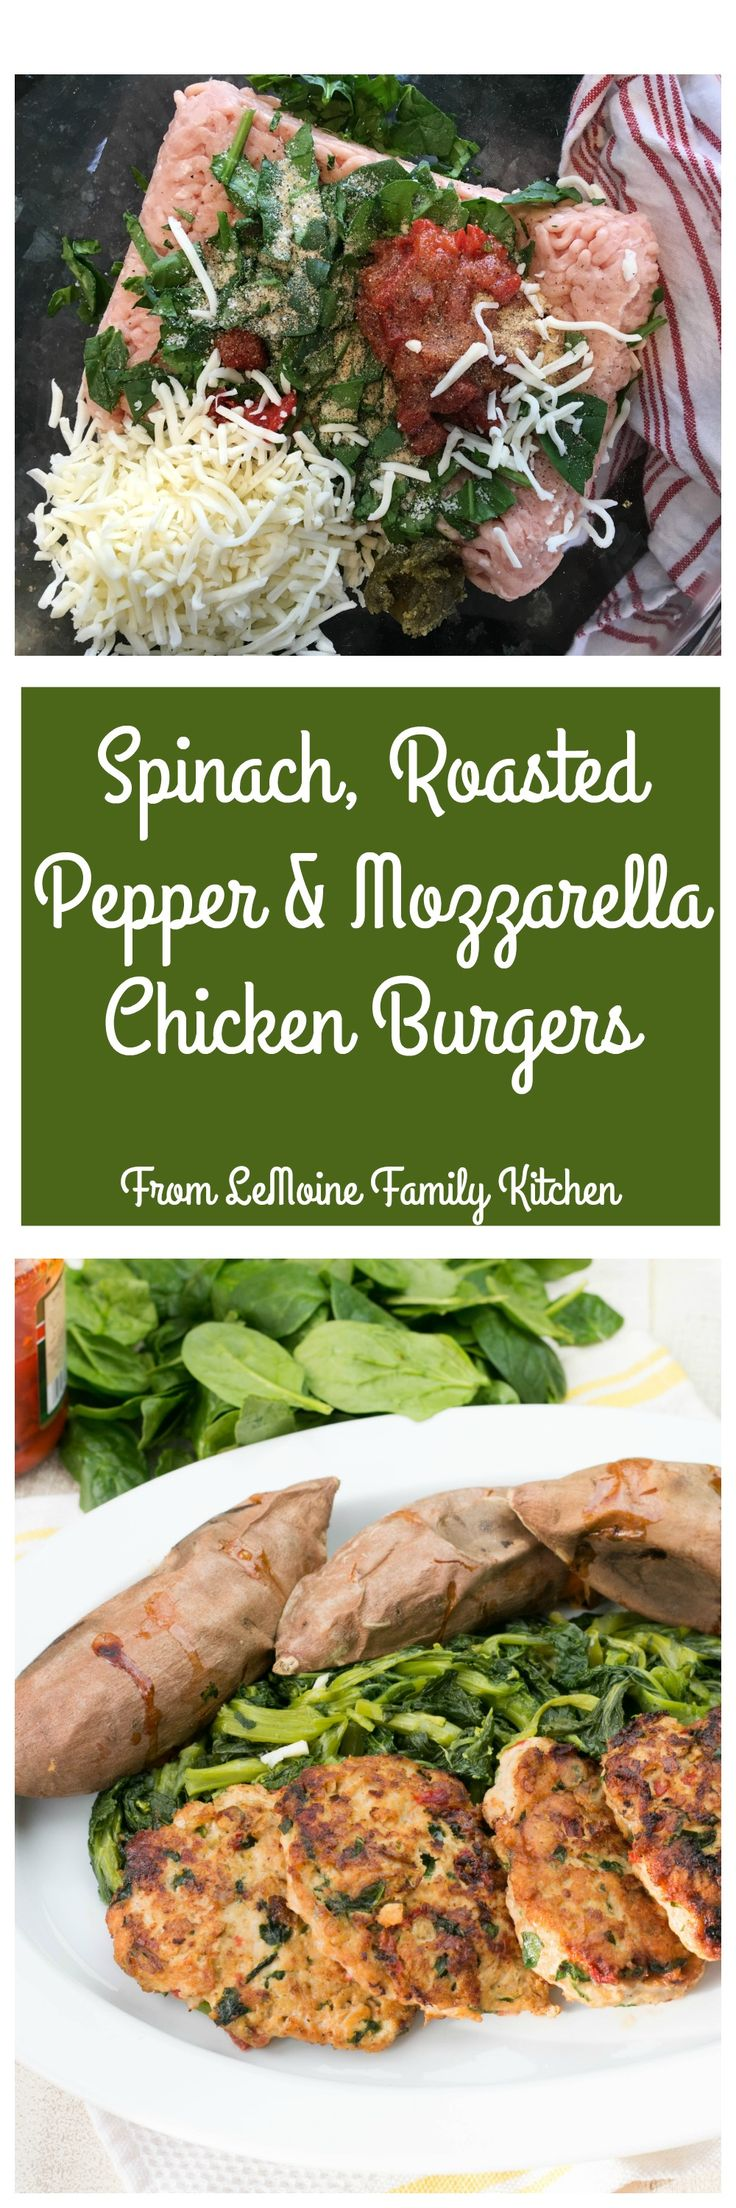 Spinach, Roasted Pepper & Mozzarella Chicken Burgers. Incredibly flavorful and a healthy way to enjoy a burger! These freeze well too so make a few batches and have a healthy meal on hand for those busy days.